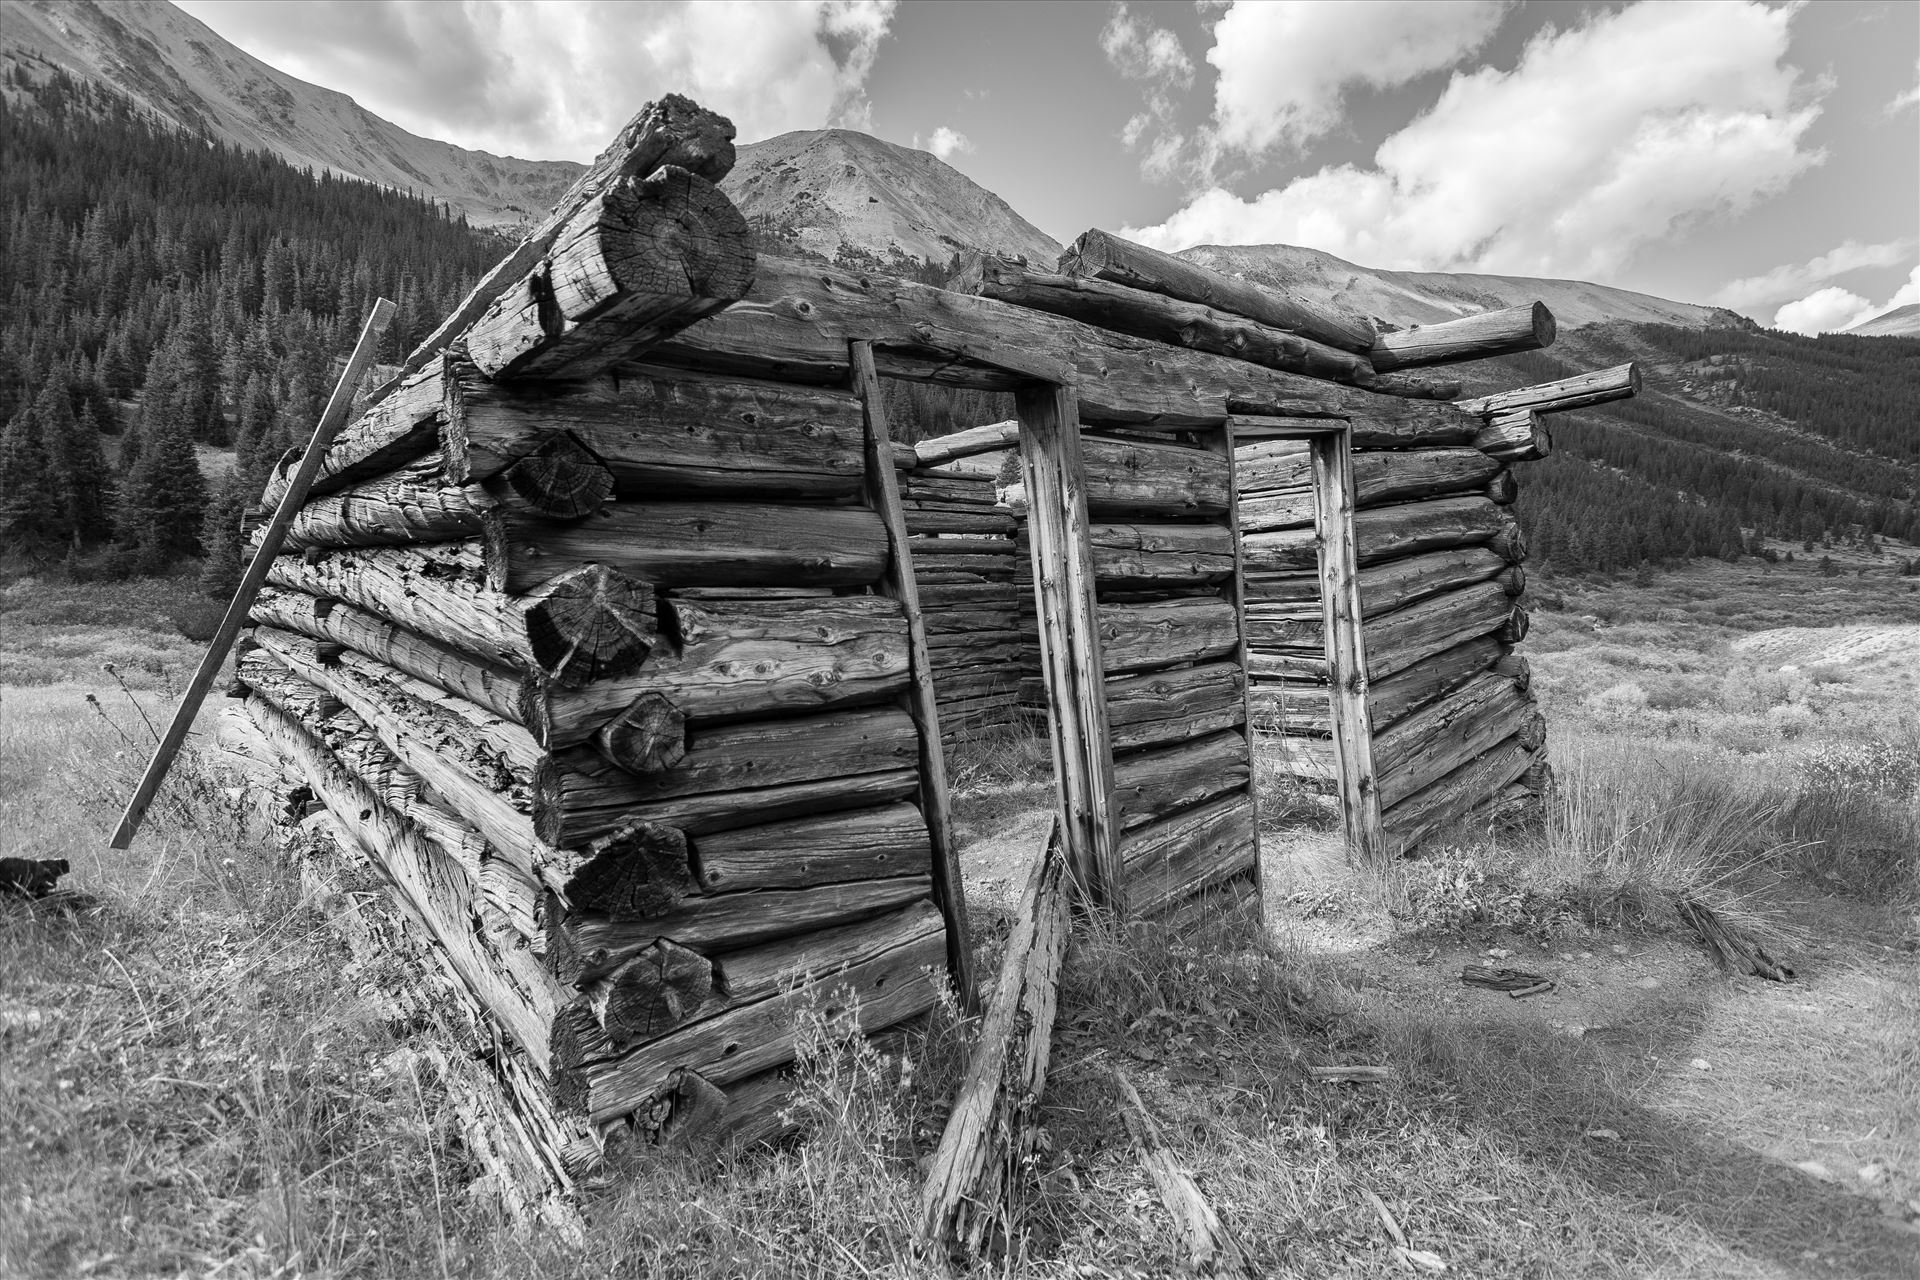 Ghosts of Independence Pass - A collapsing cabin in the ghost town of Independence, Colorado. by D Scott Smith